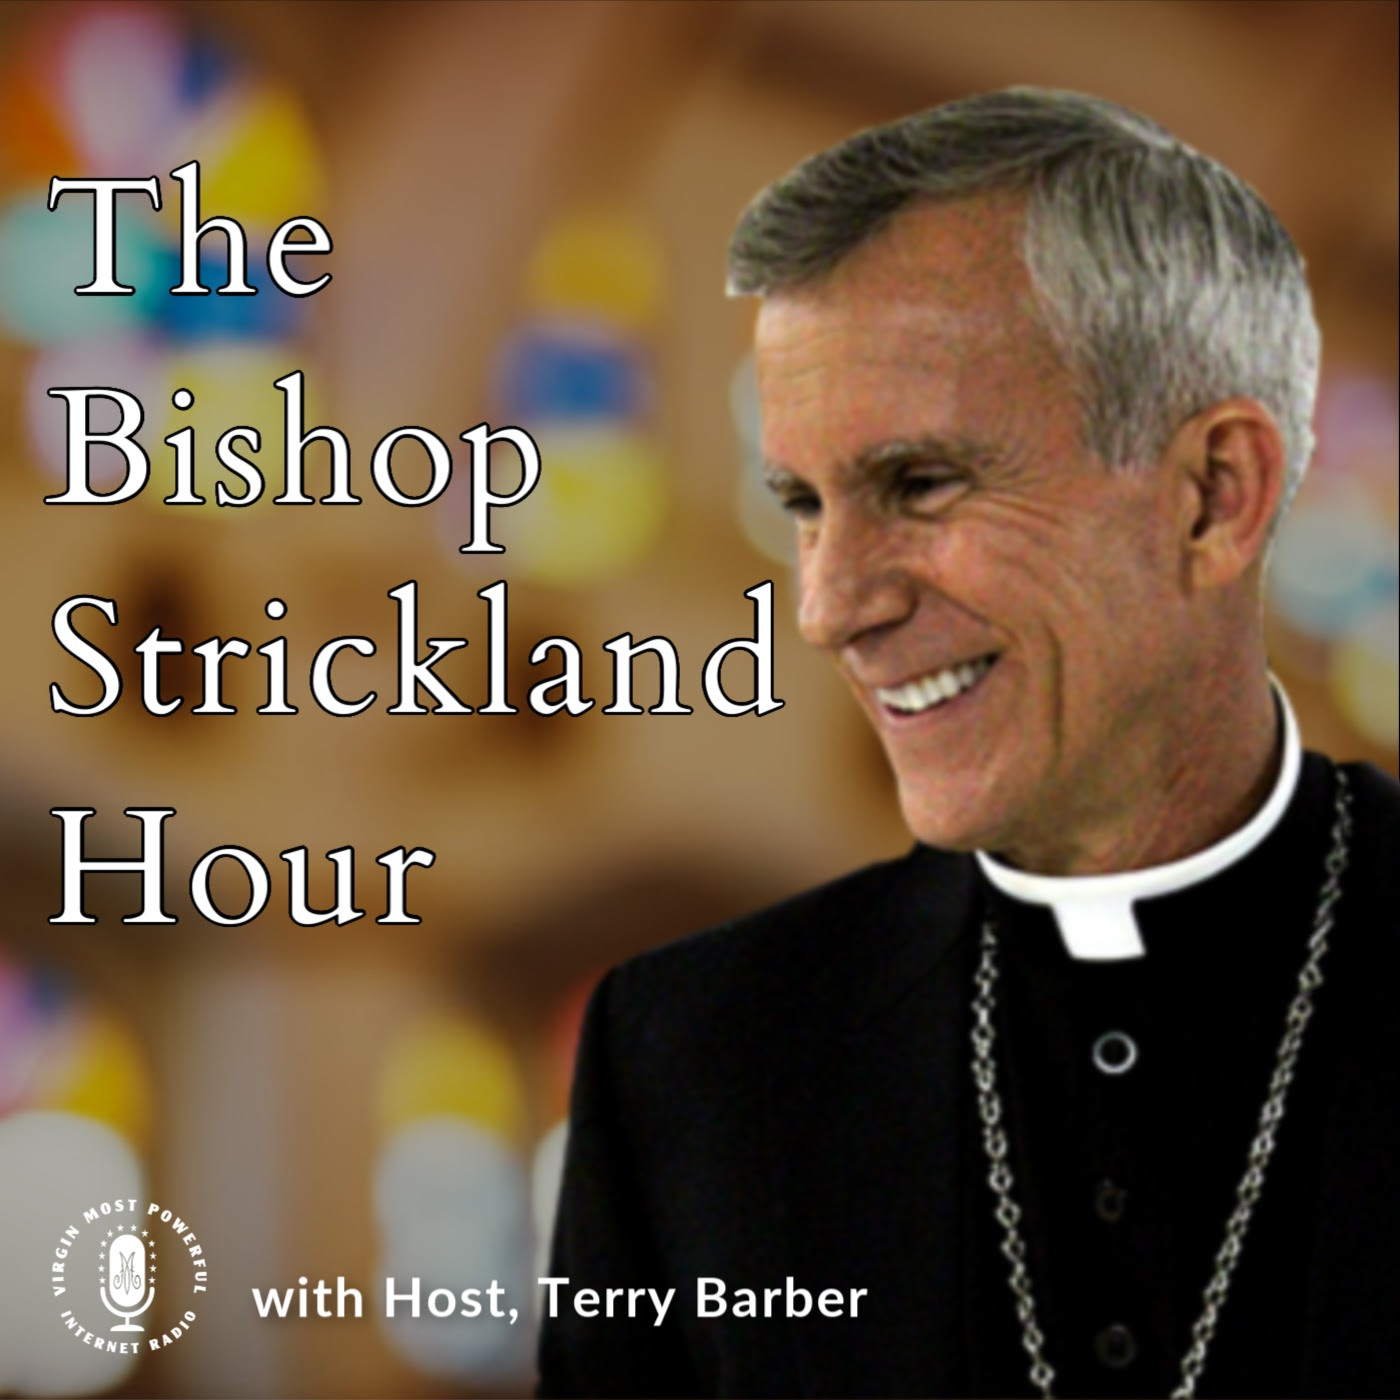 The Bishop Strickland Hour – Virgin Most Powerful Radio